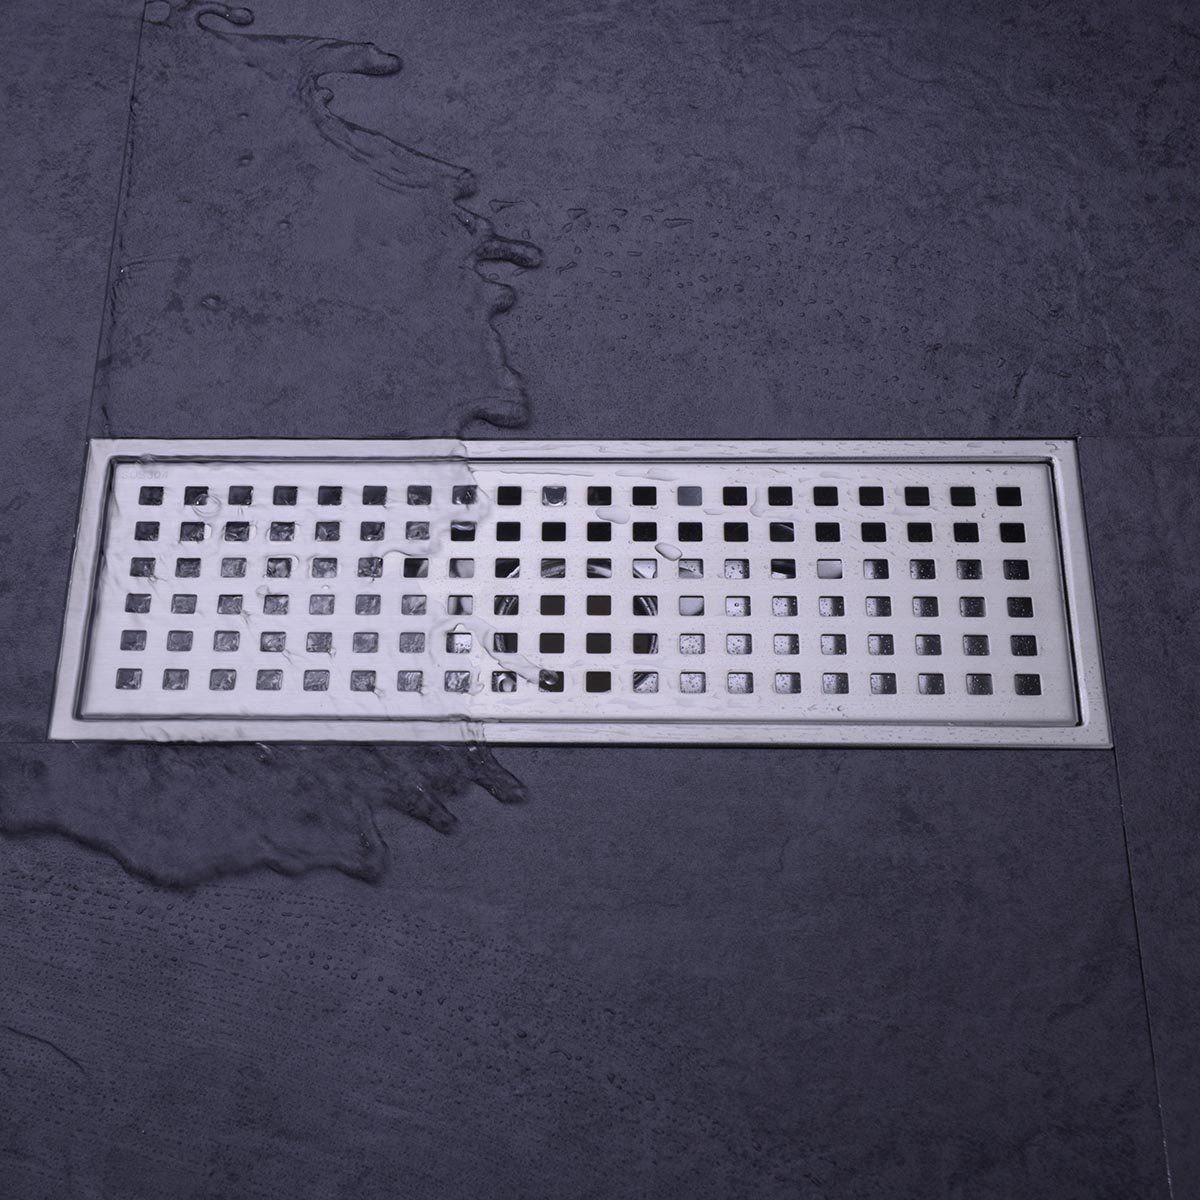 Hanebath Ql120402i Linear Shower Floor Drain With Tile Insert Grate Made Of Sus304 Stainless Steel 12 Inch Long Brushed Floor Drains Shower Floor Flooring